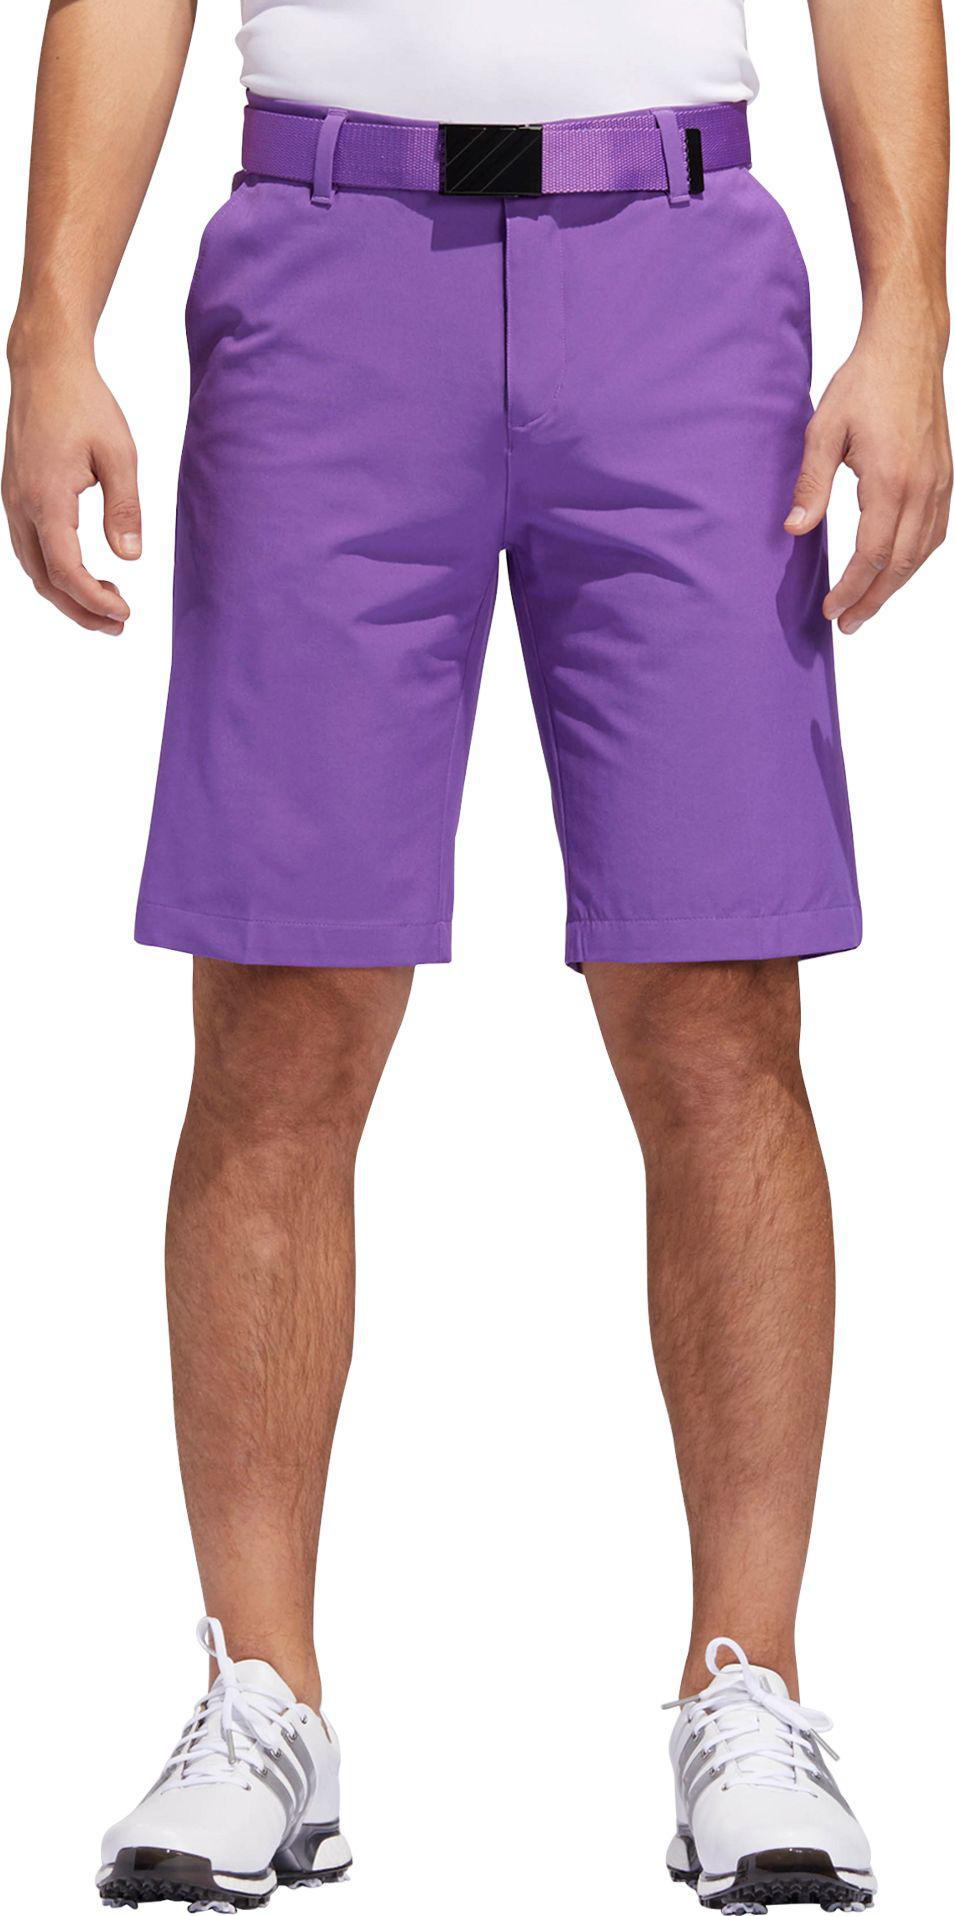 92d1a0b087 Lyst - adidas Ultimate365 Golf Shorts in Purple for Men